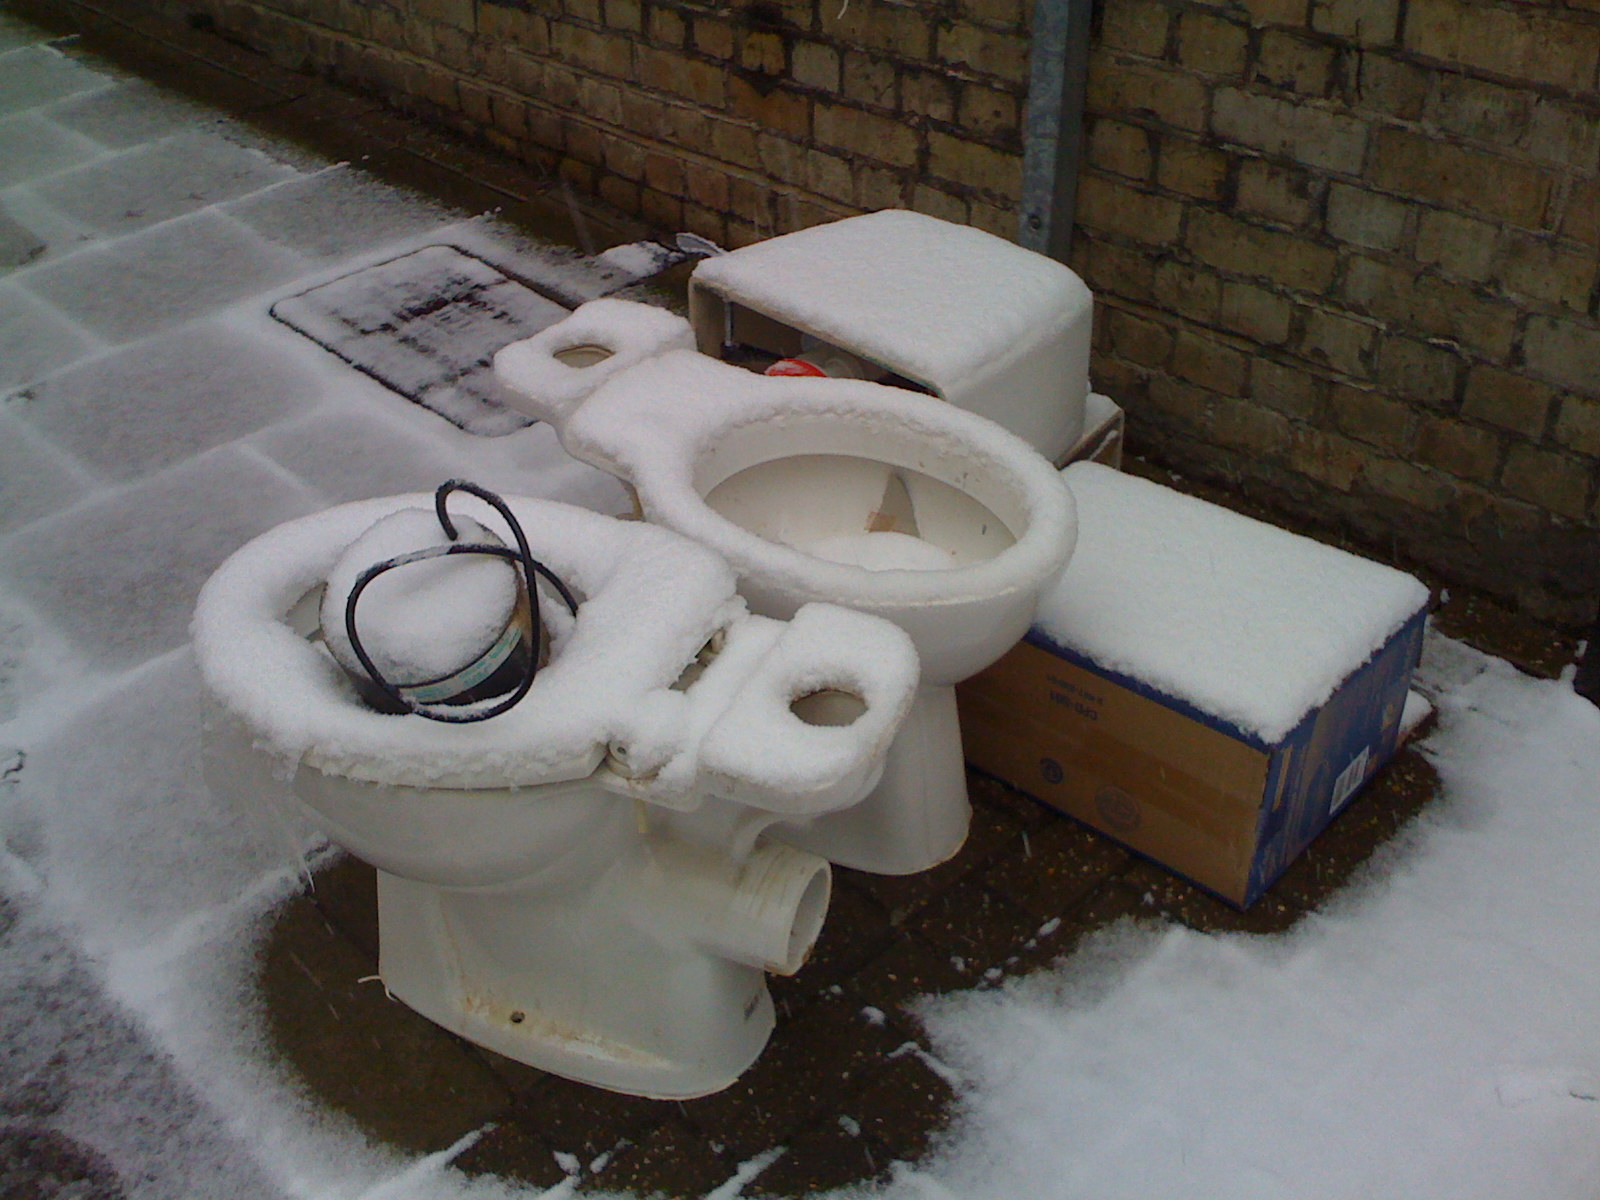 snow on toilet